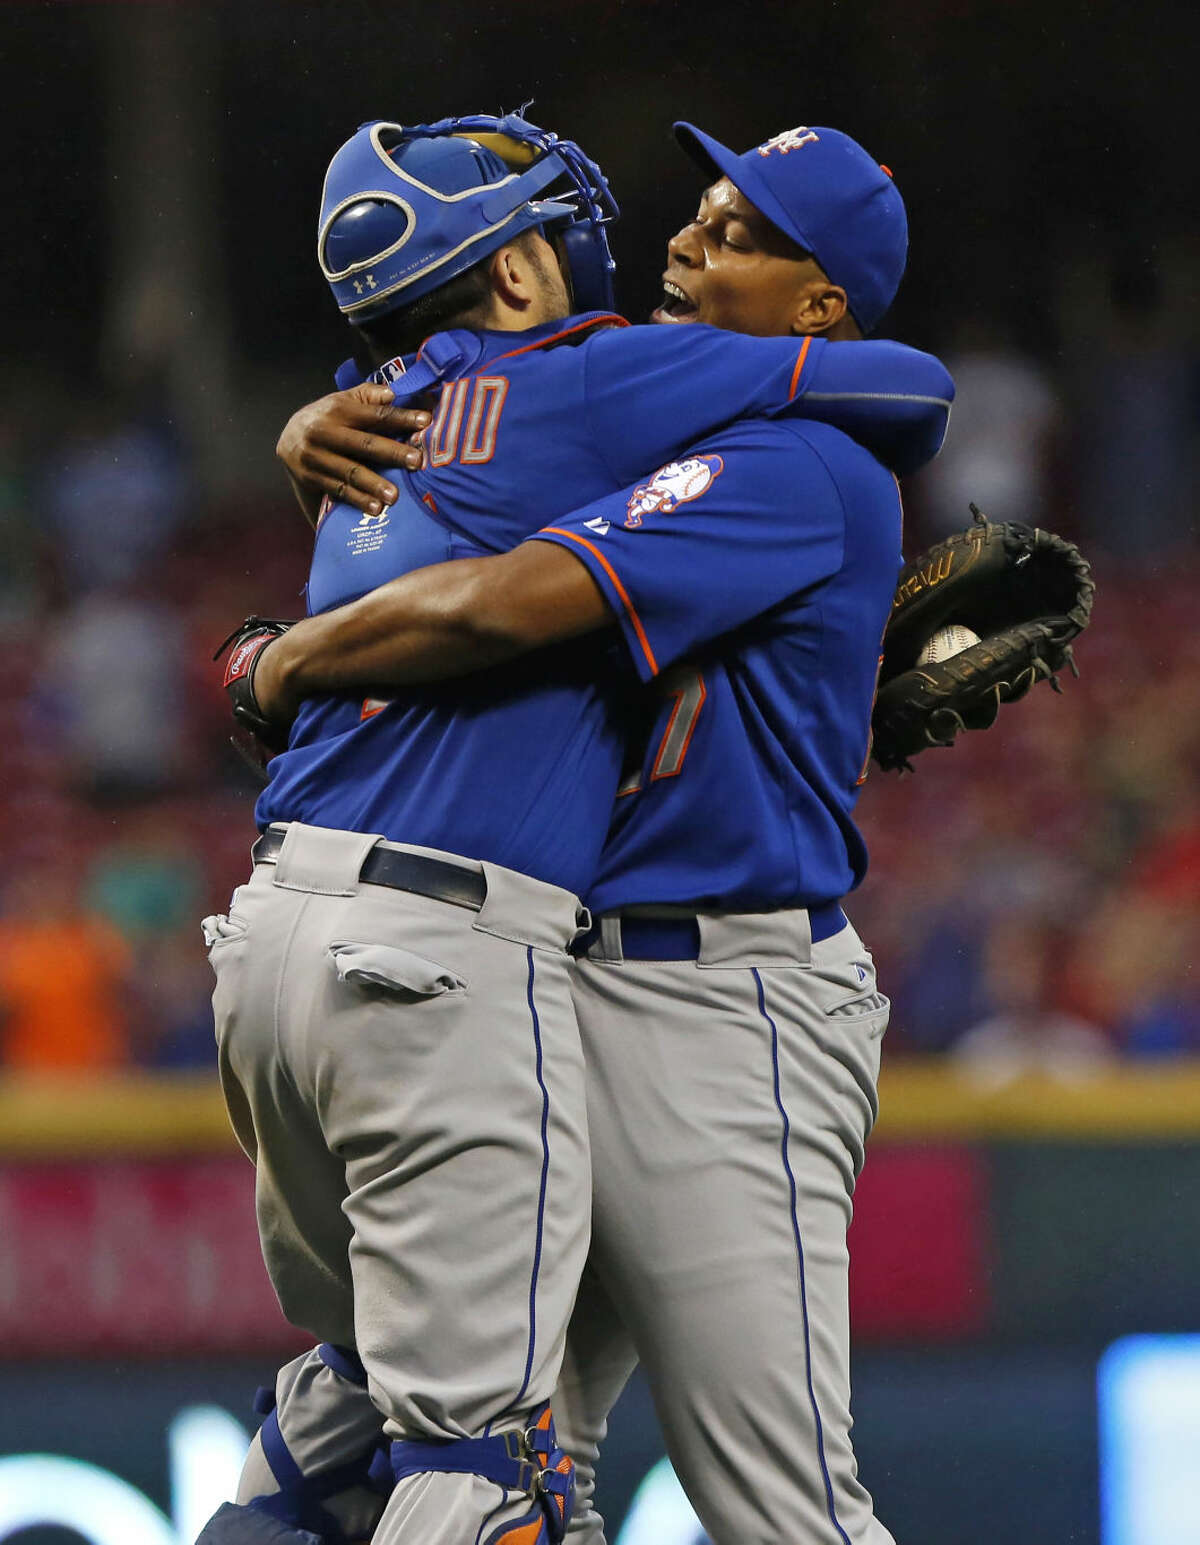 New York Mets relief pitcher Jeurys Familia, right, celebrates with catcher Travis d'Arnaud after the Mets clinched the NL East with a 10-2 win over the Cincinnati Reds in a baseball game, Saturday, Sept. 26, 2015, in Cincinnati. (AP Photo/Aaron Doster)